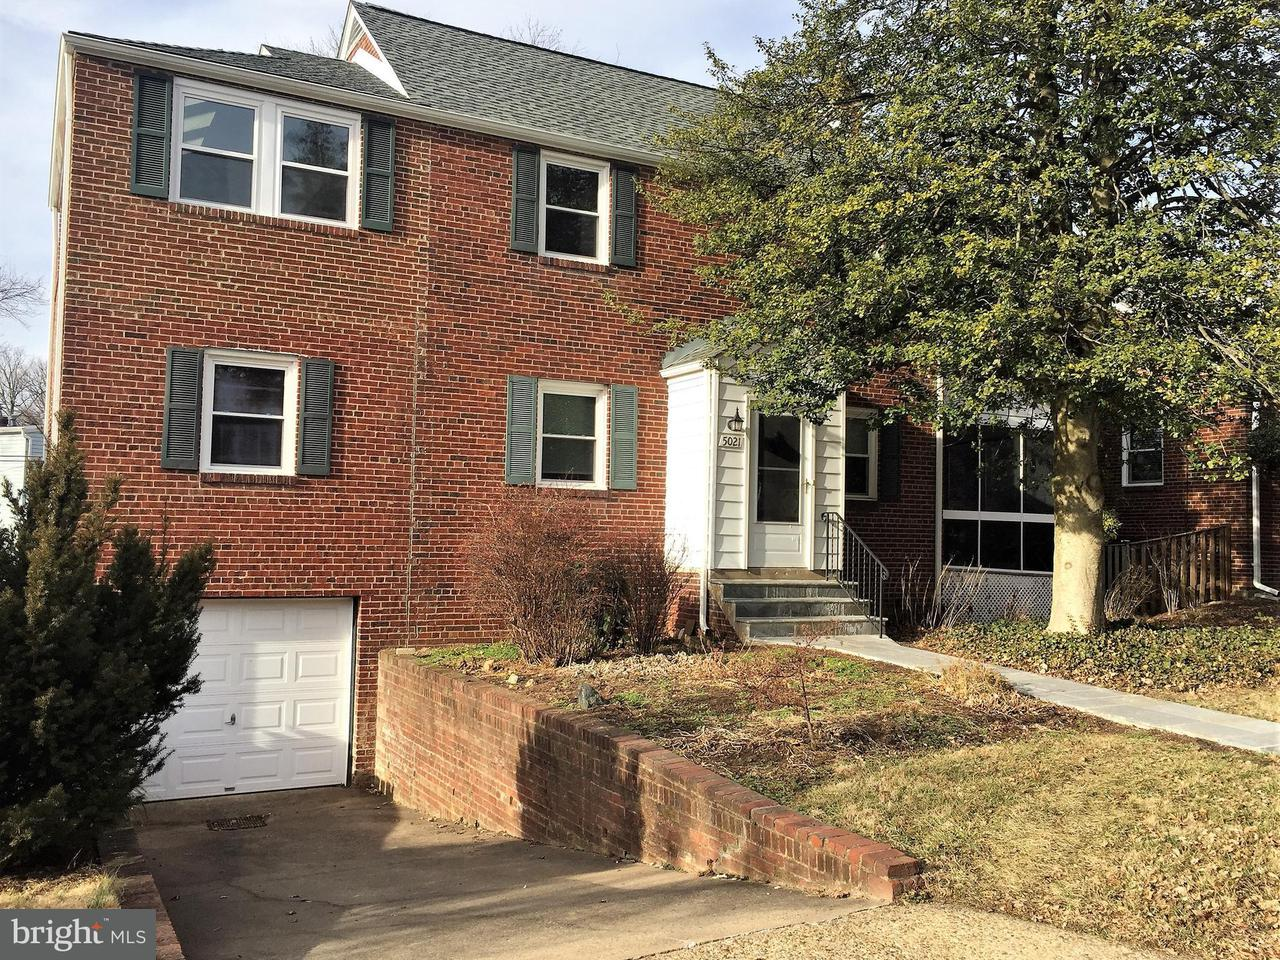 Single Family Home for Sale at 5021 25th Rd N 5021 25th Rd N Arlington, Virginia 22207 United States